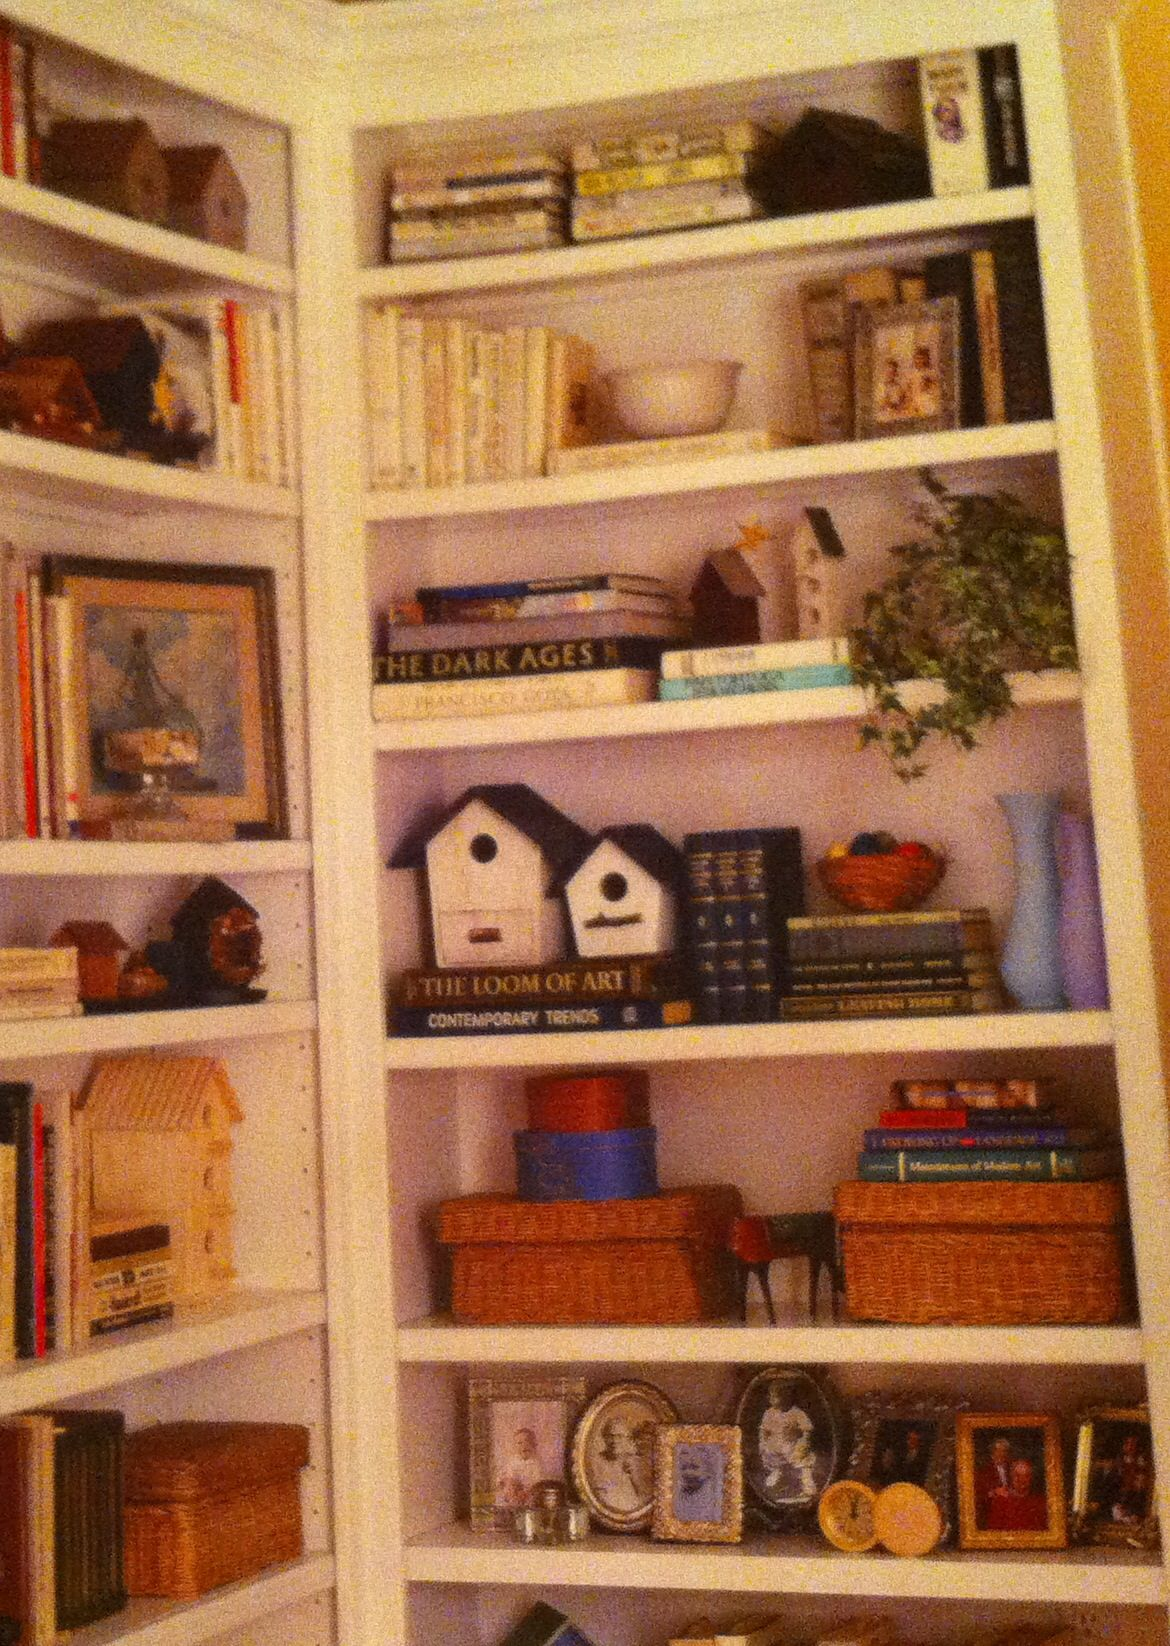 Wonderful image of Pin by Laura Gubler on Bookshelves & Books to Put on Them Pinterest with #B93812 color and 1170x1646 pixels